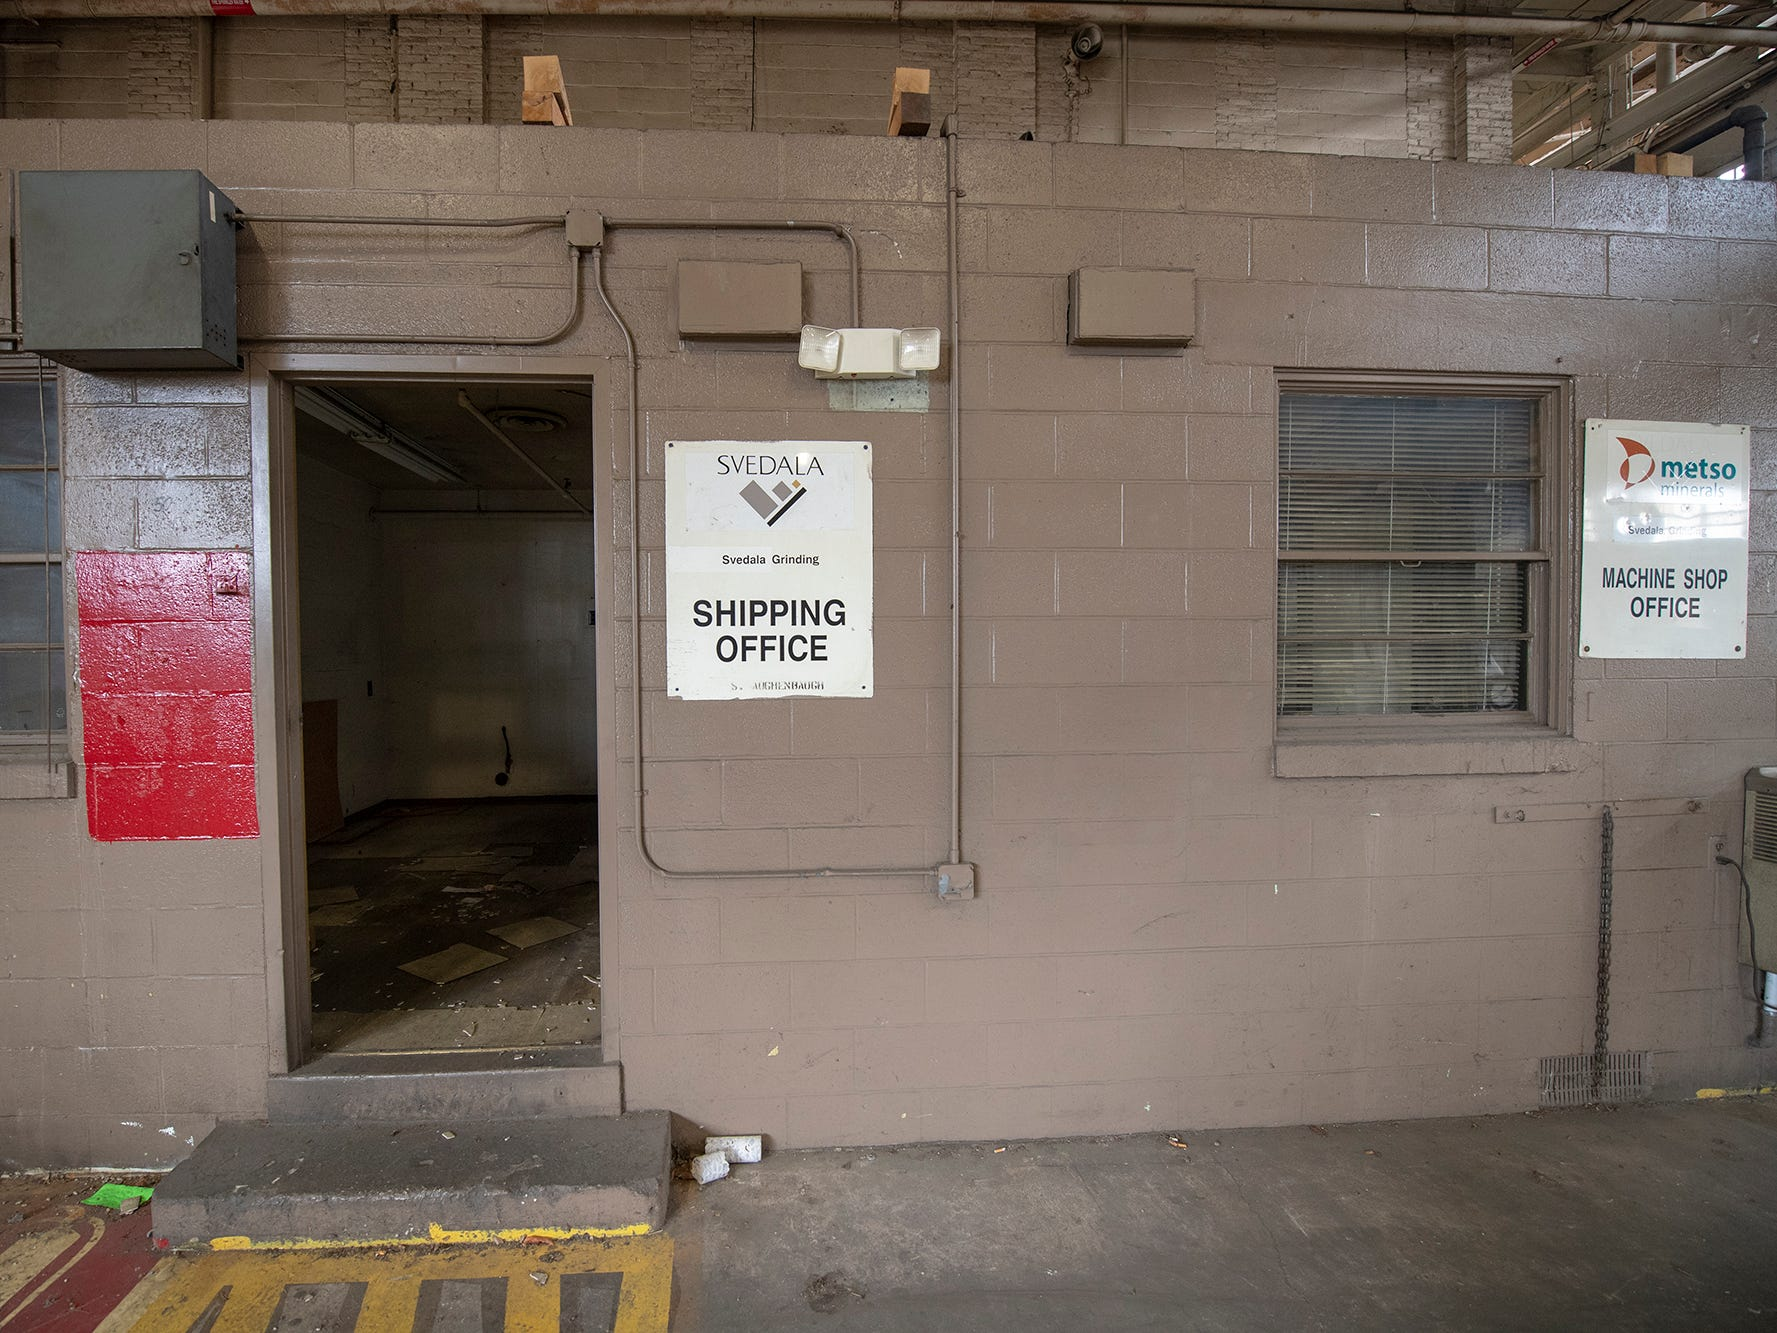 Empty offices in the former Metso complex wait for a new purpose.